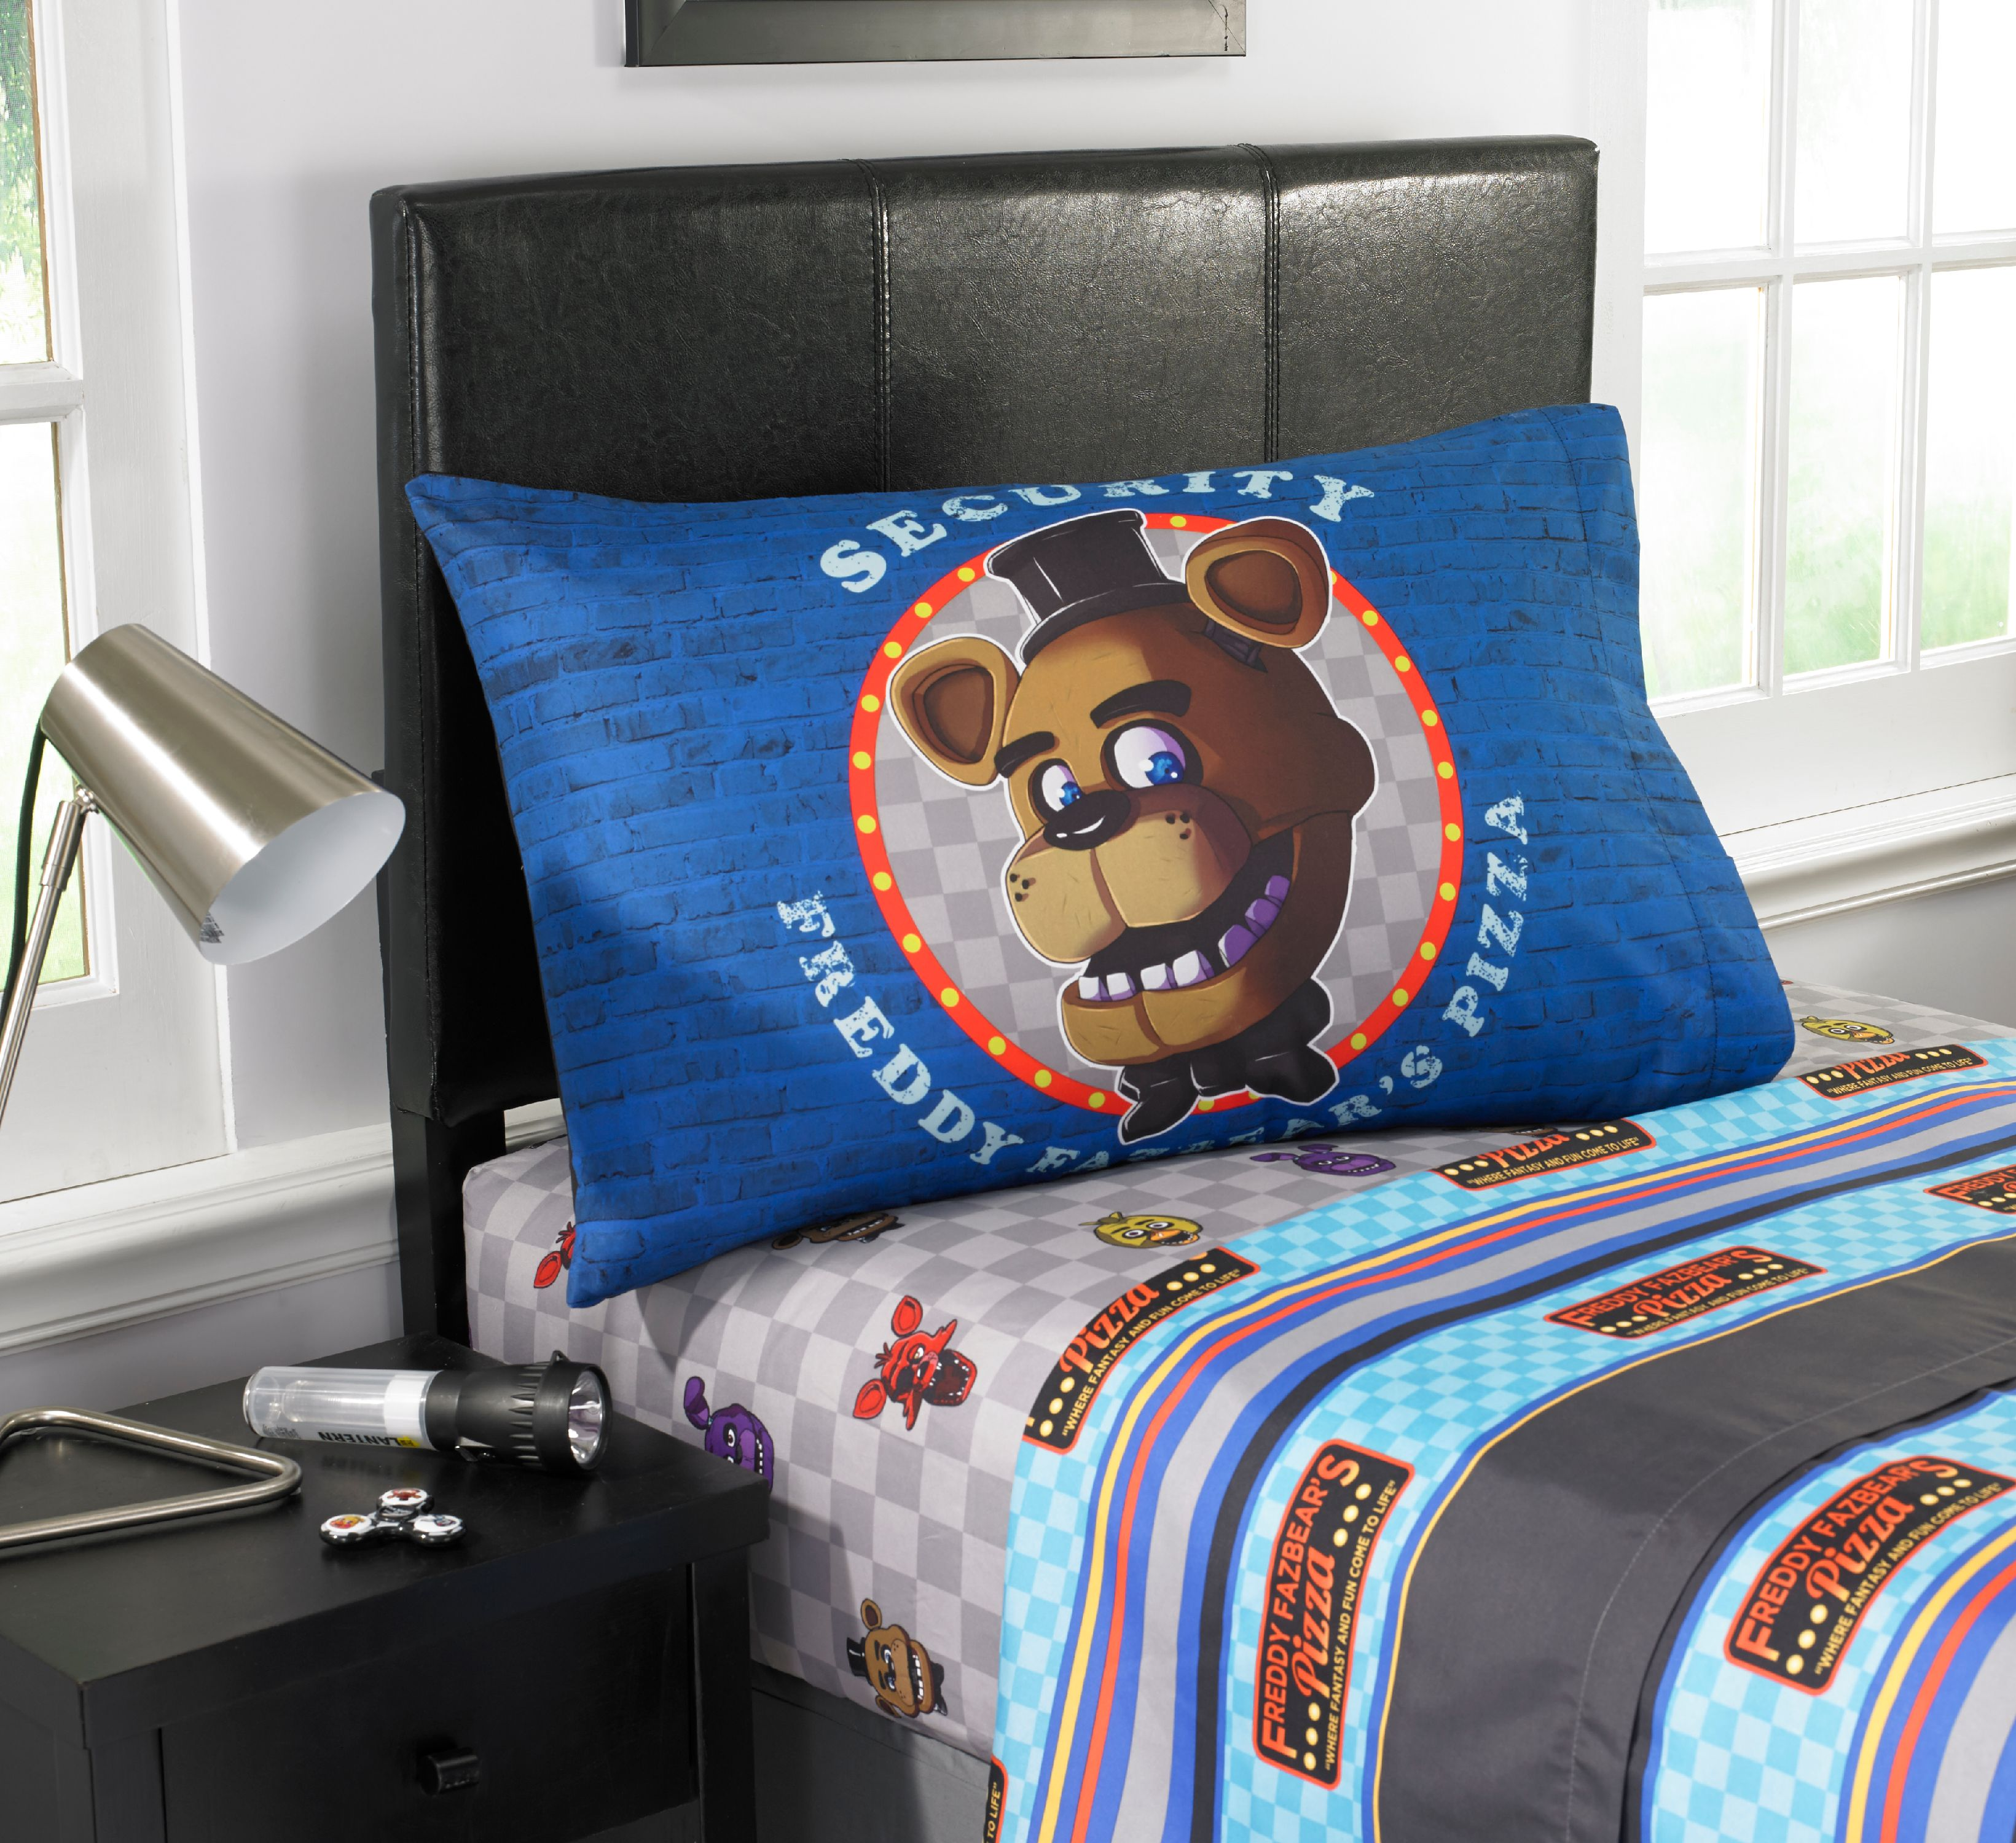 Five Nights At Freddy's Pizza Security Kids' Bedding Sheet Set, 1 Each